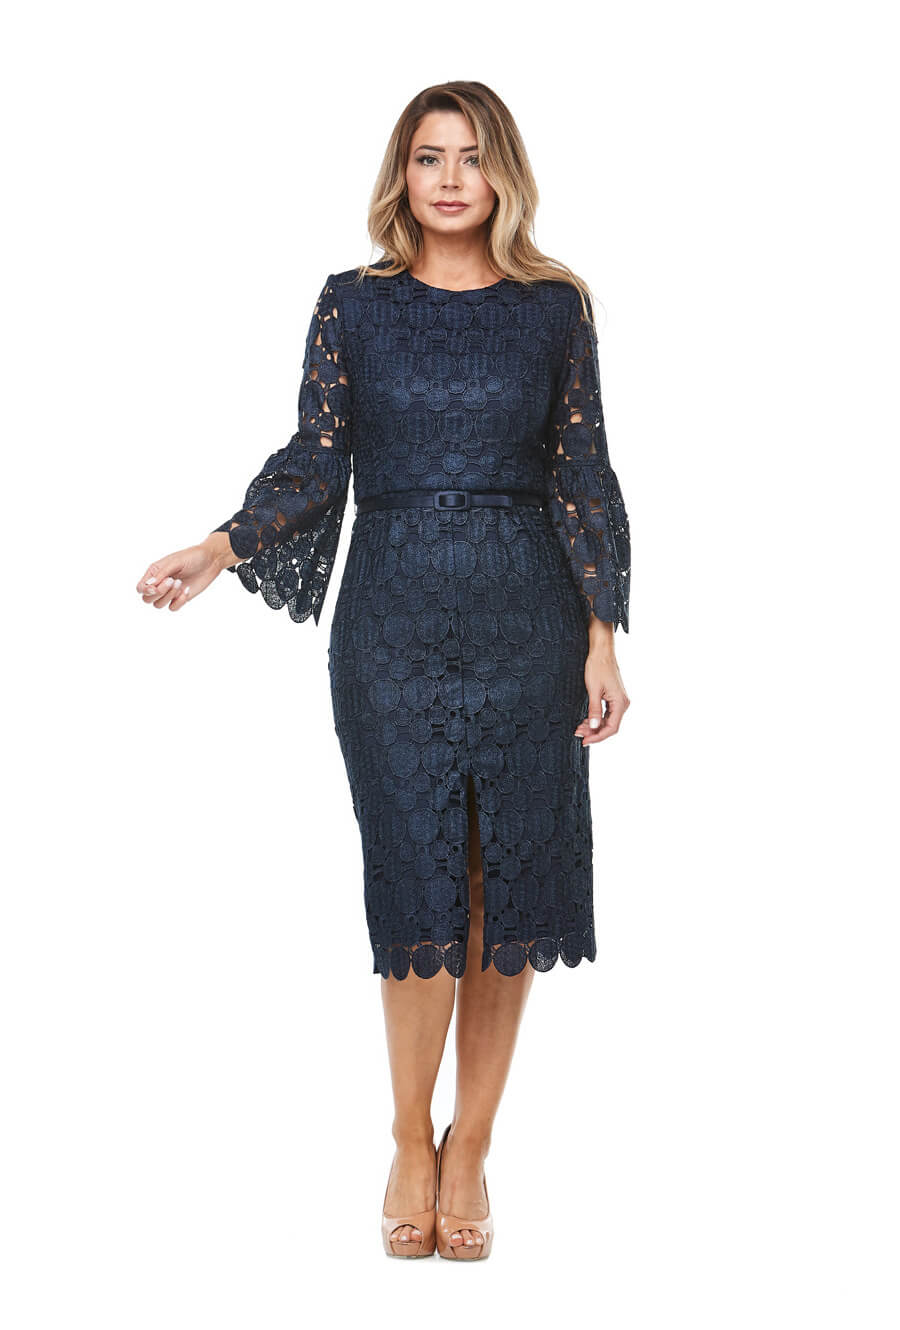 Mid length embroidered cocktaildress with long bell sleeves, center split & belt